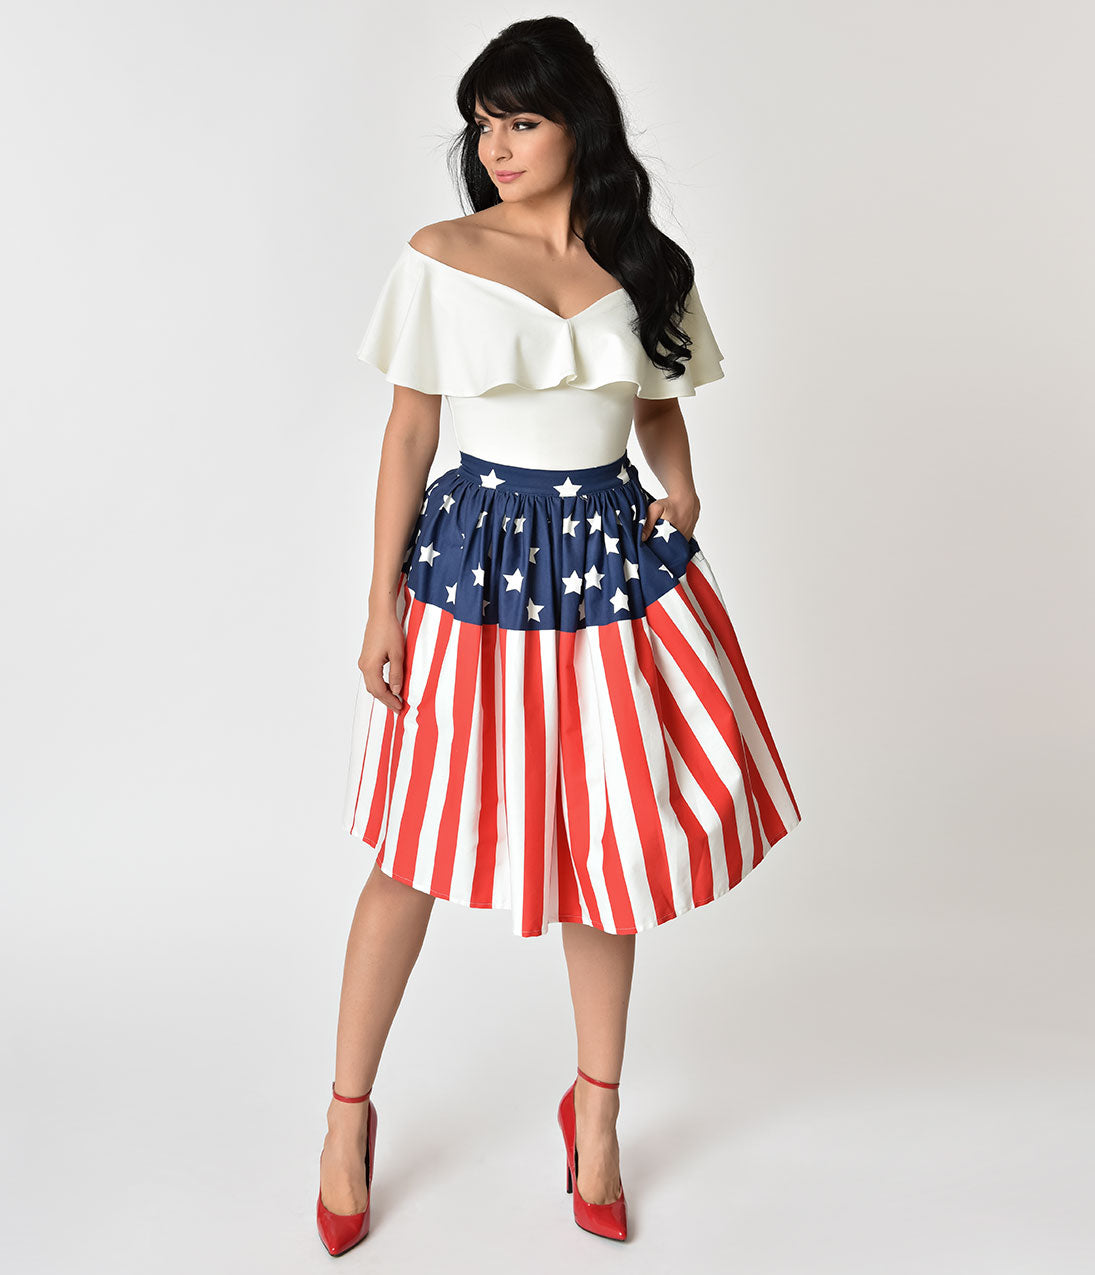 Retro Skirts: Vintage, Pencil, Circle, & Plus Sizes Unique Vintage 1950S Style American Flag High Waist Swing Skirt $78.00 AT vintagedancer.com